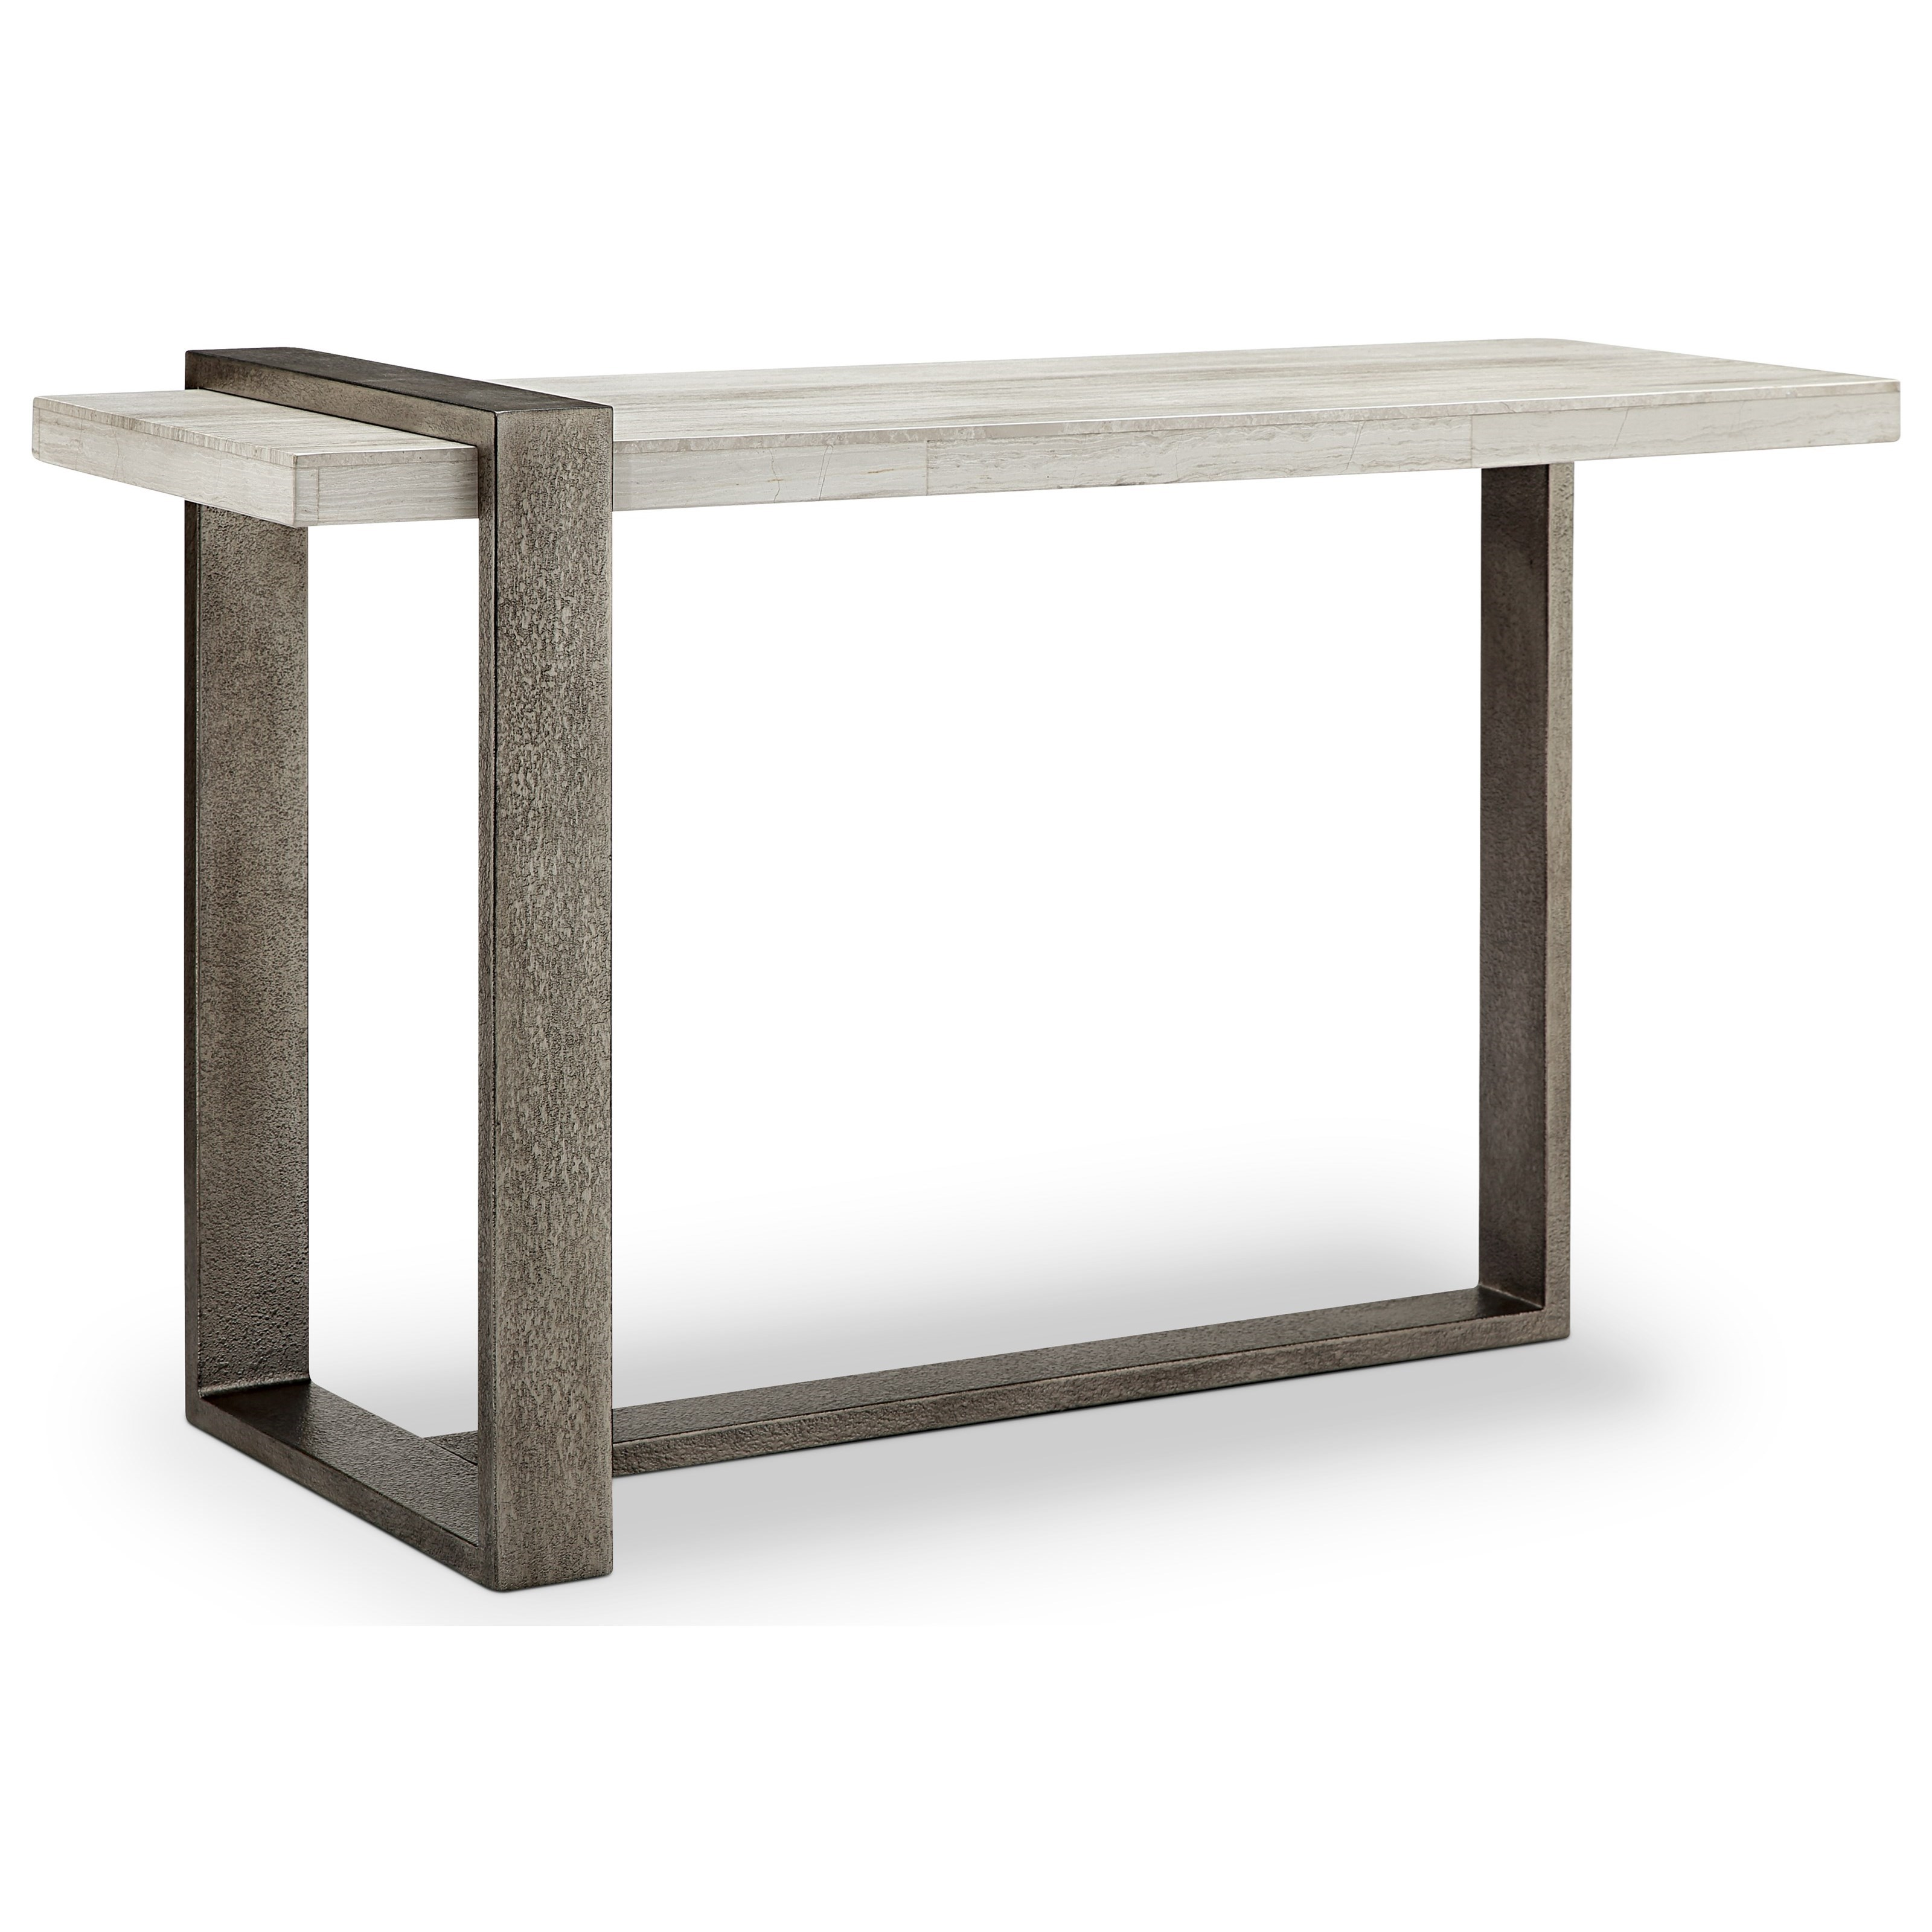 Magnussen Home Wiltshire Mh Sofa Table Item Number T4701 73